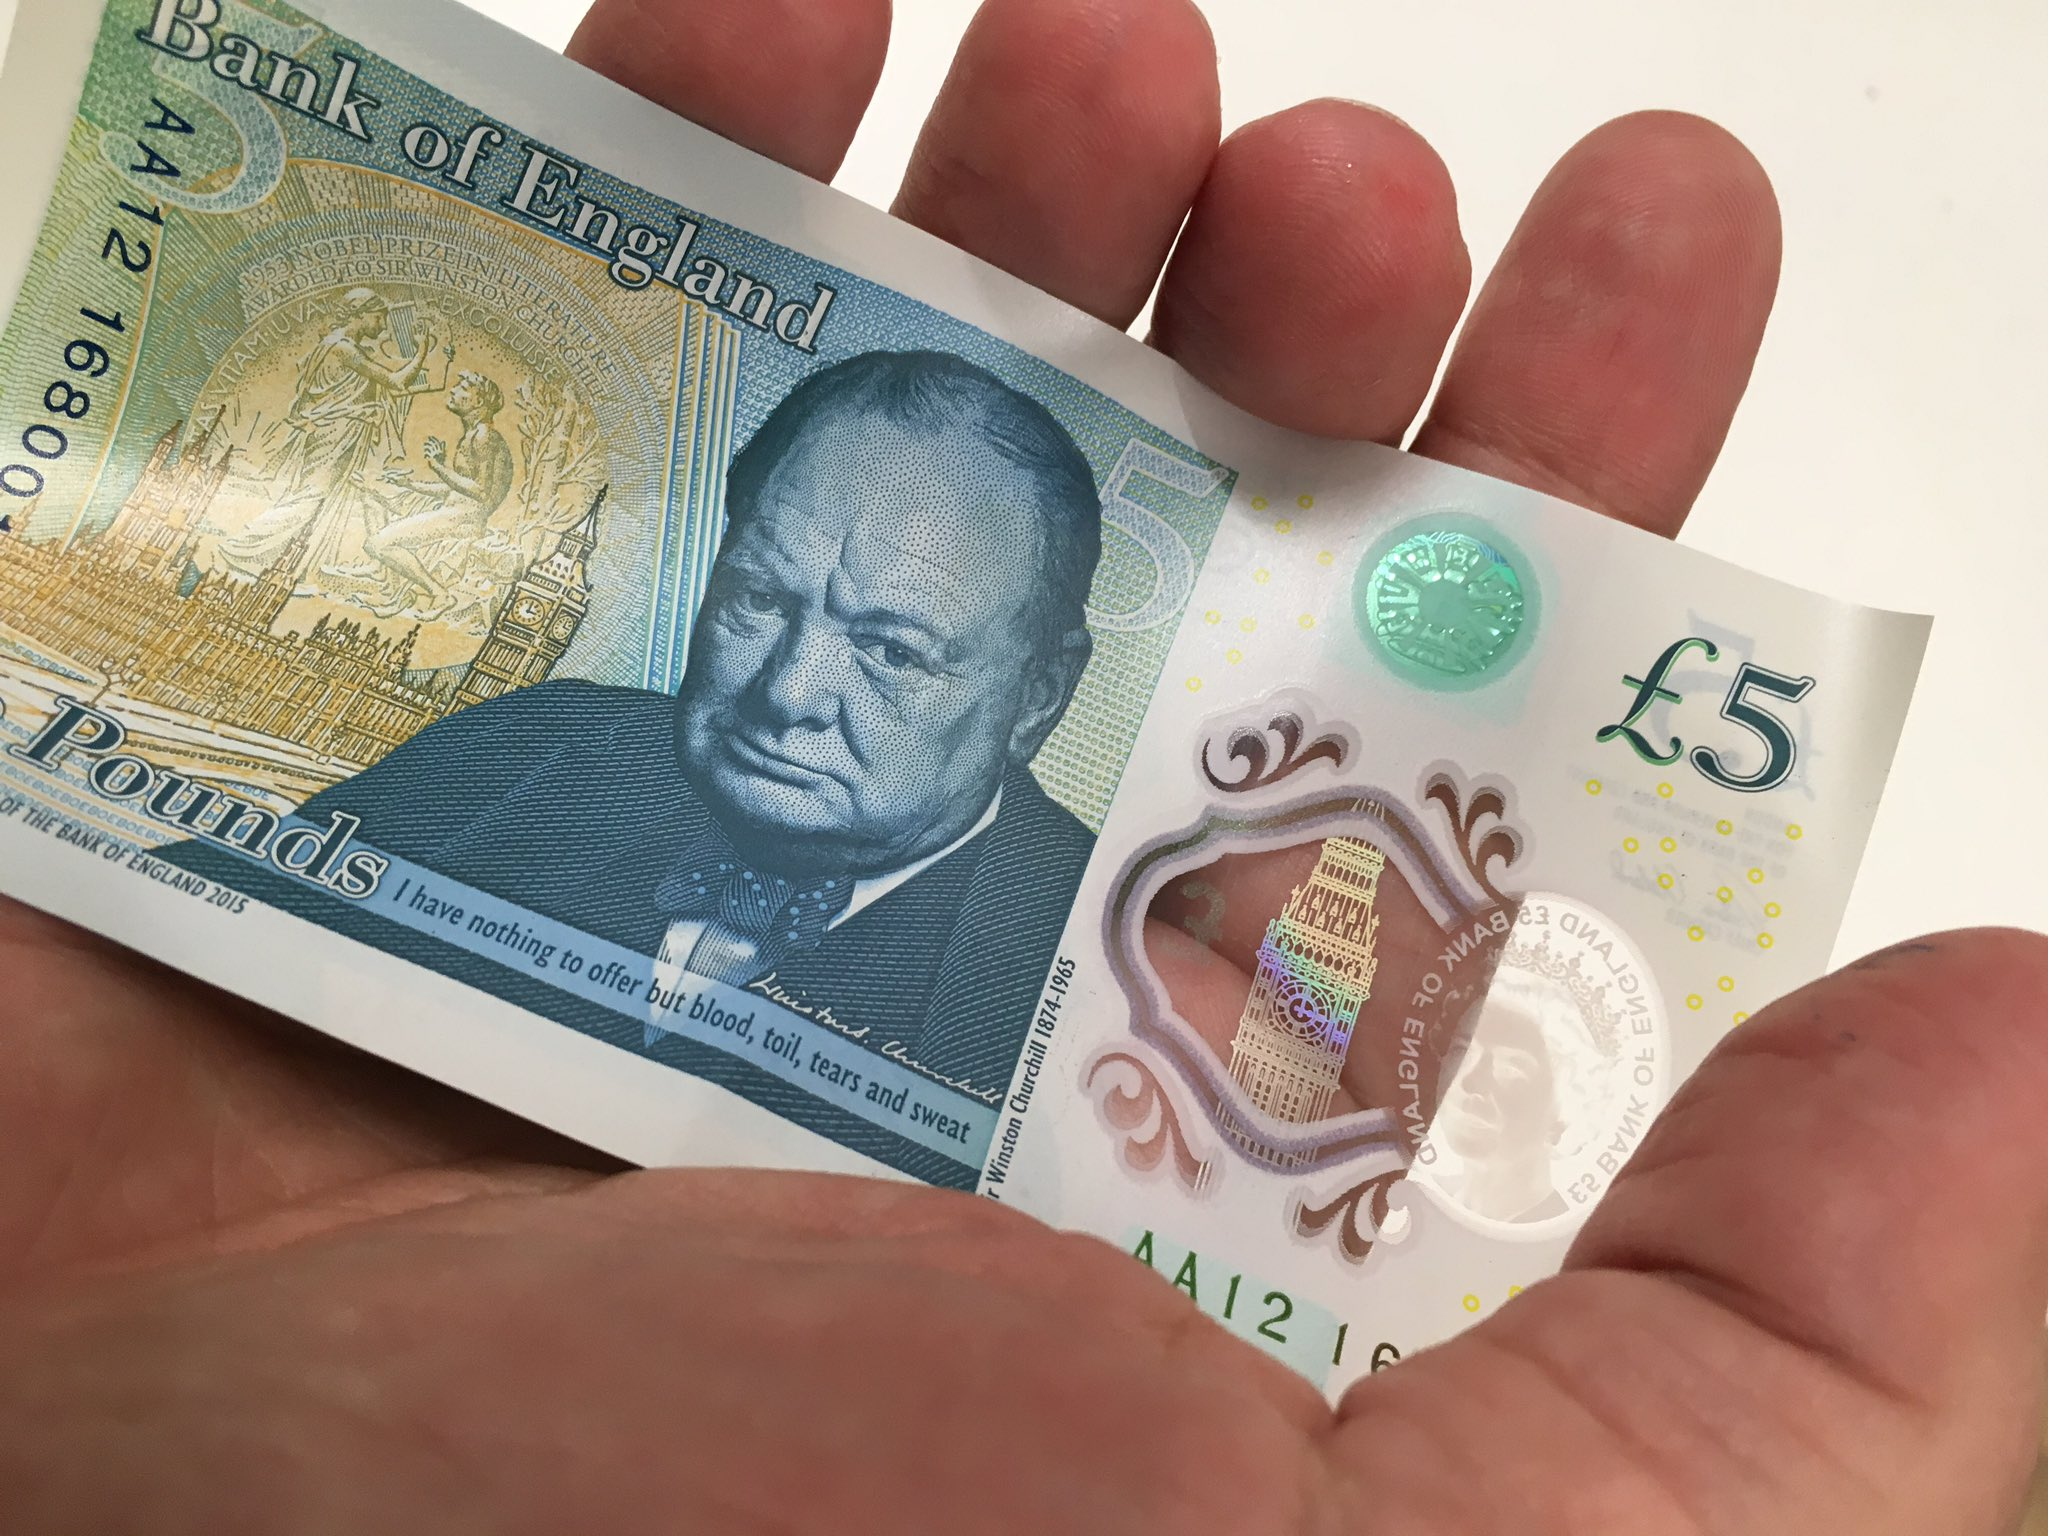 Got me one of those new plastic fivers. If you want it, it's yours for a tenner. https://t.co/nyVPoOLuL3